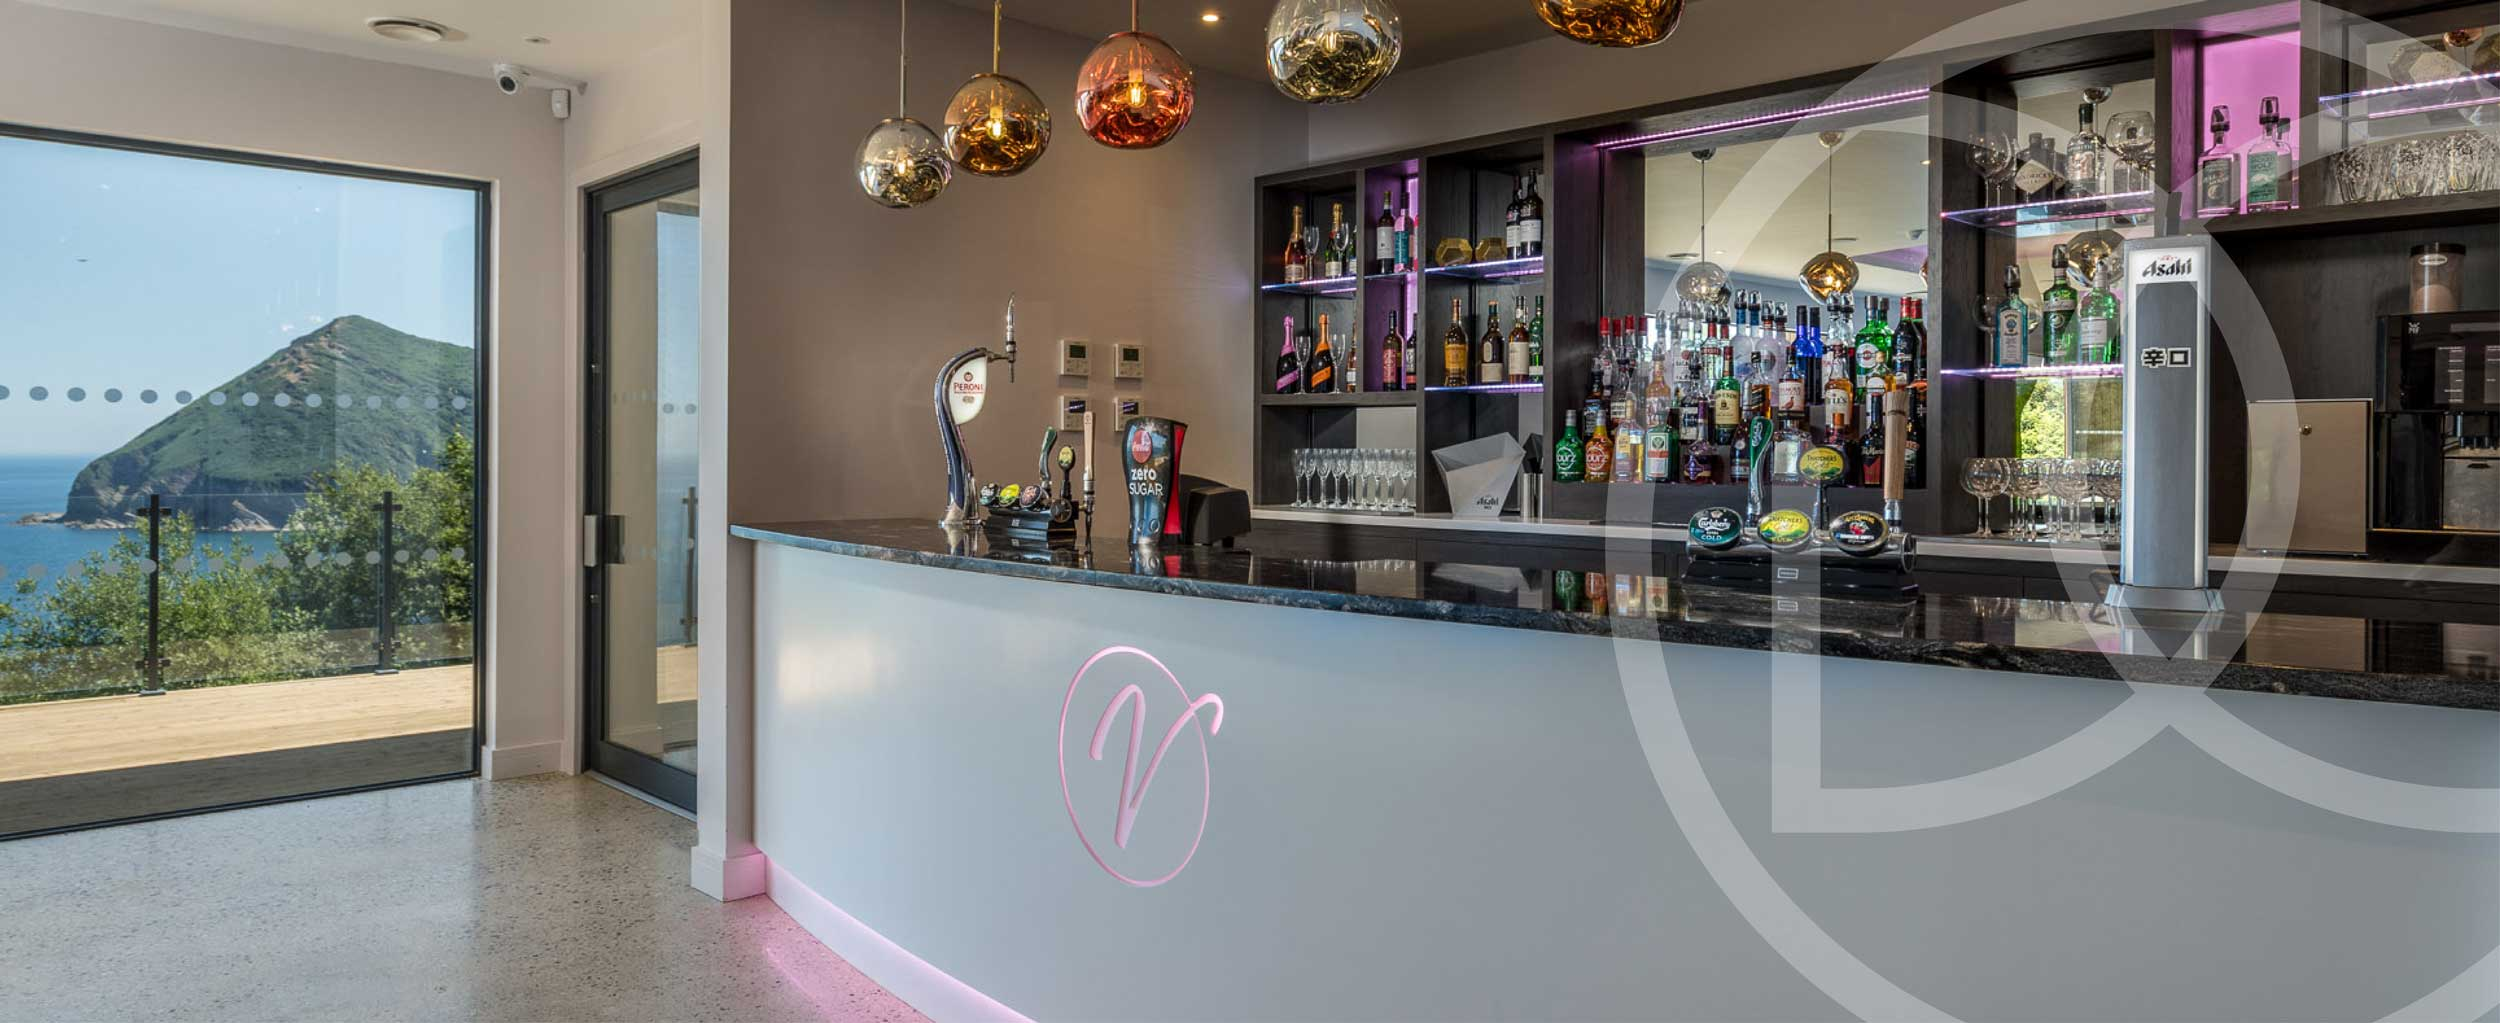 Bespoke bar North Devon